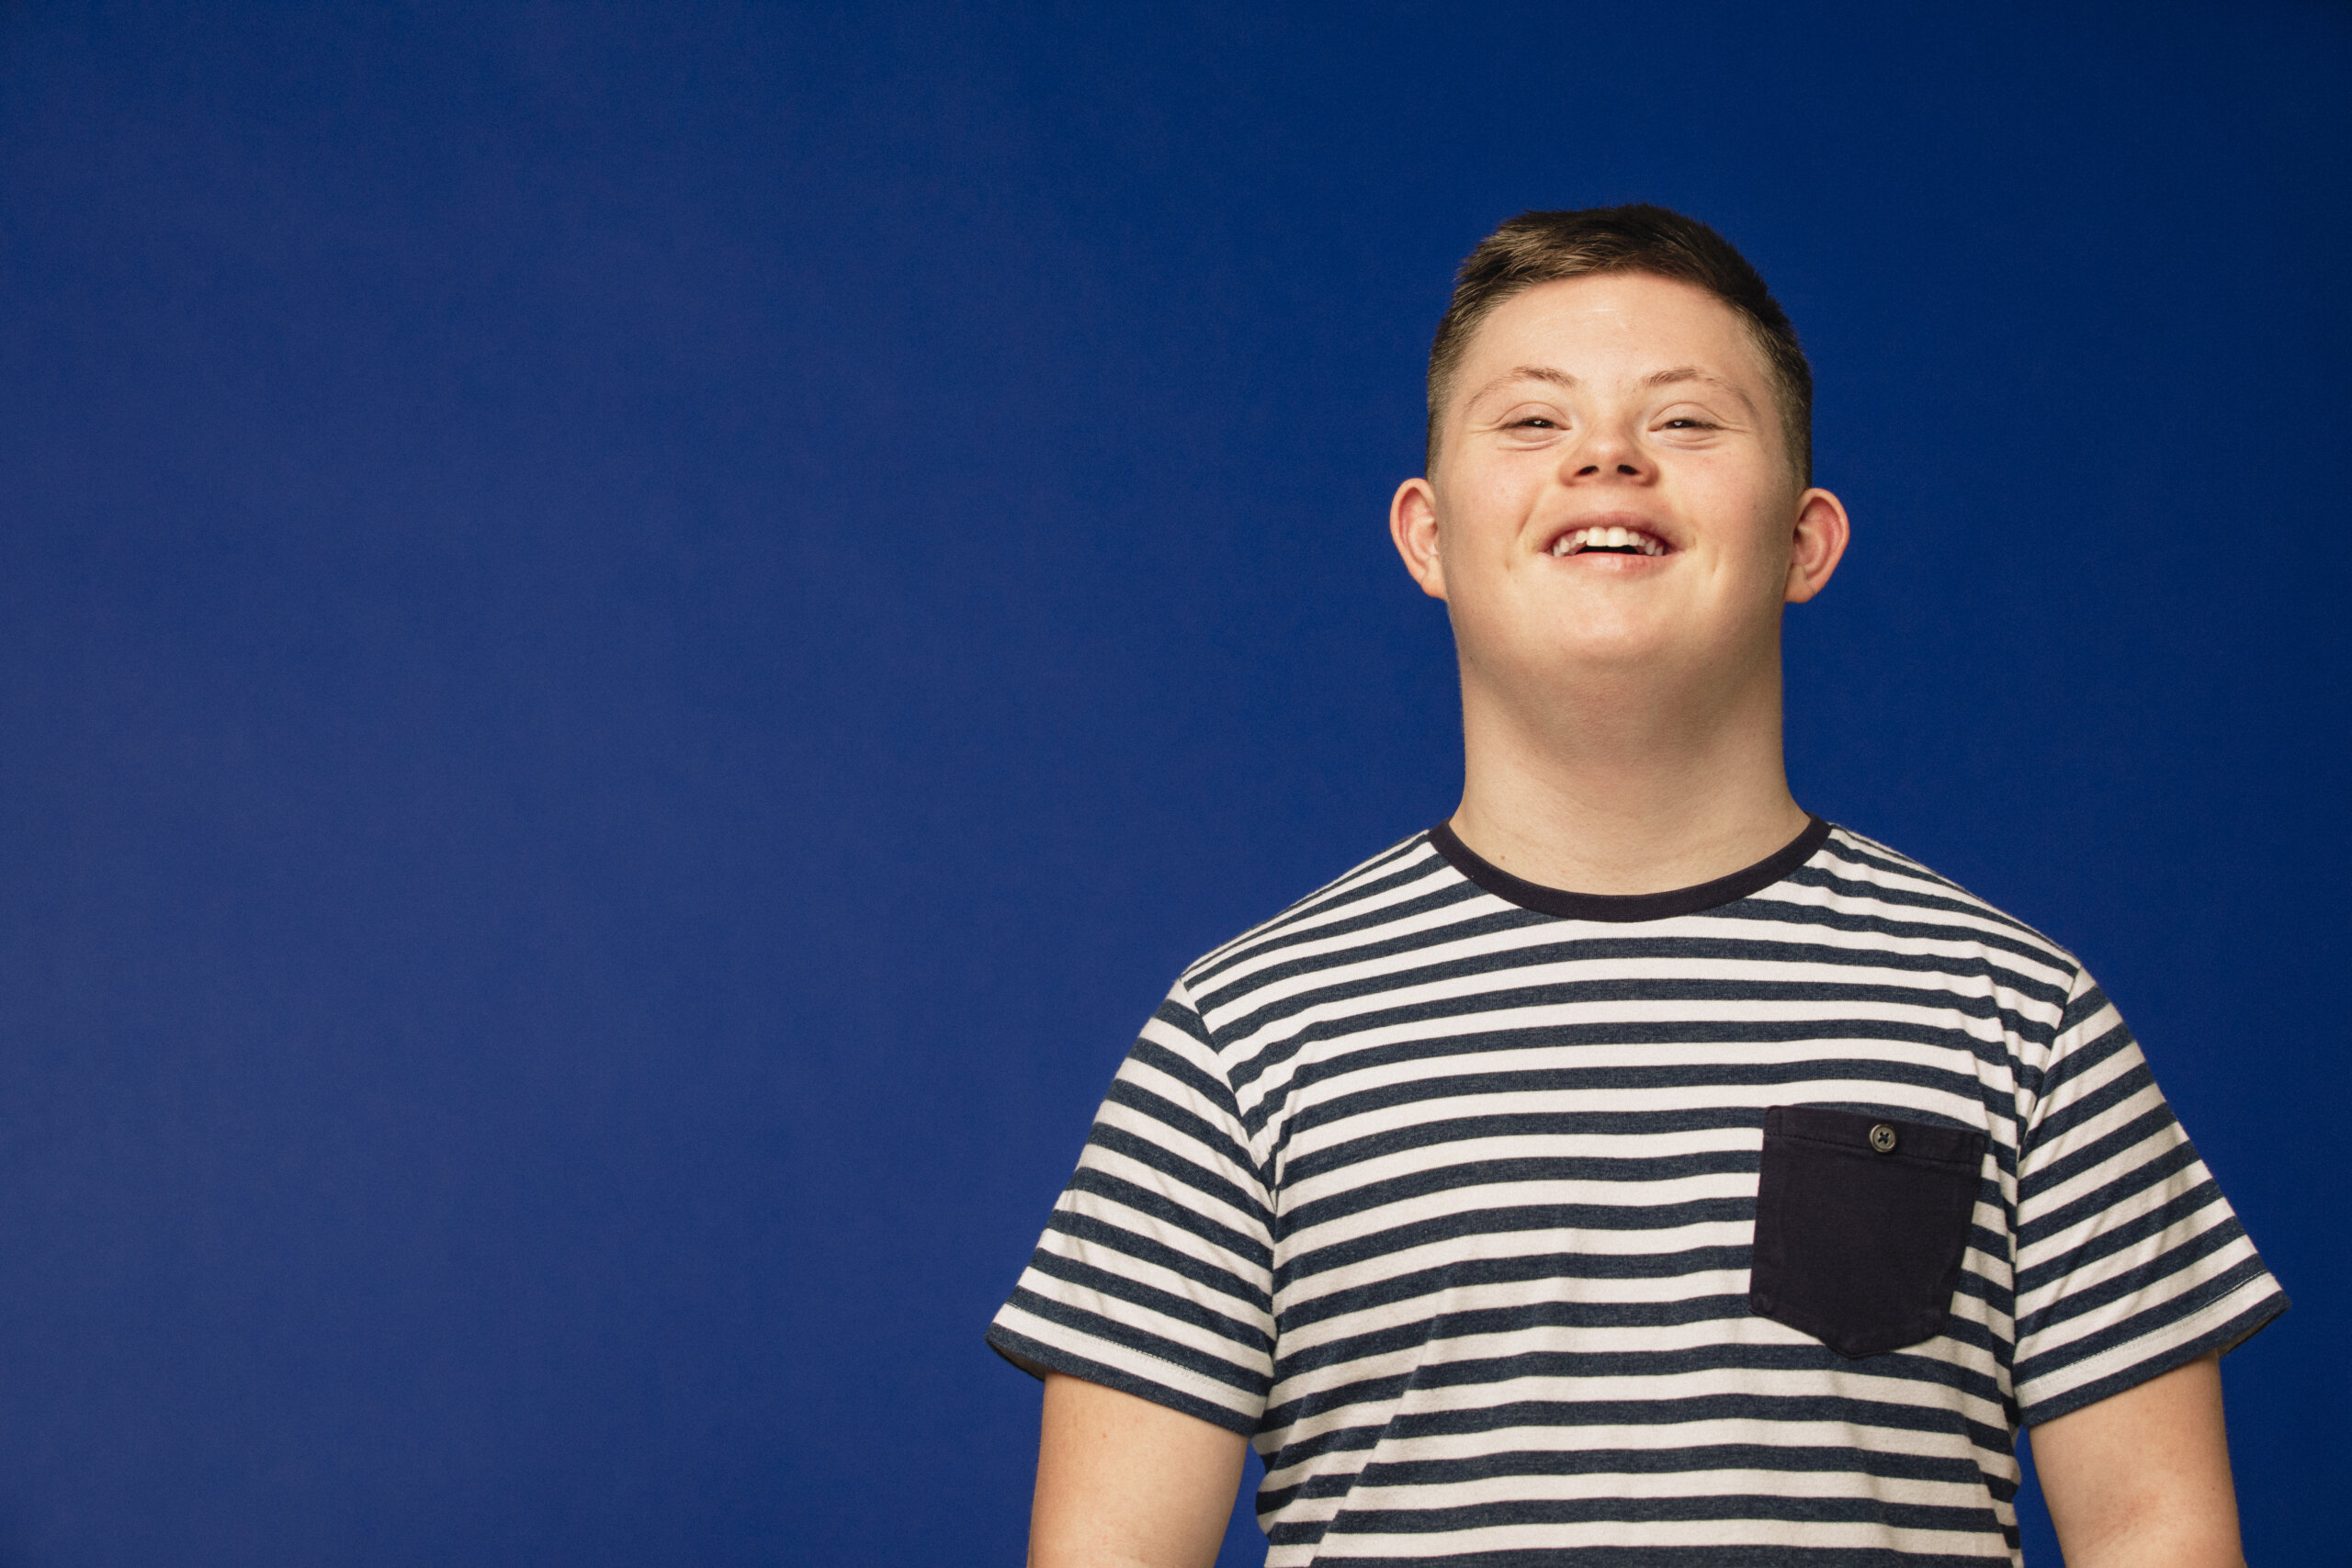 Image of a teenage down syndrome boy looking at the camera, smiling and looking happy